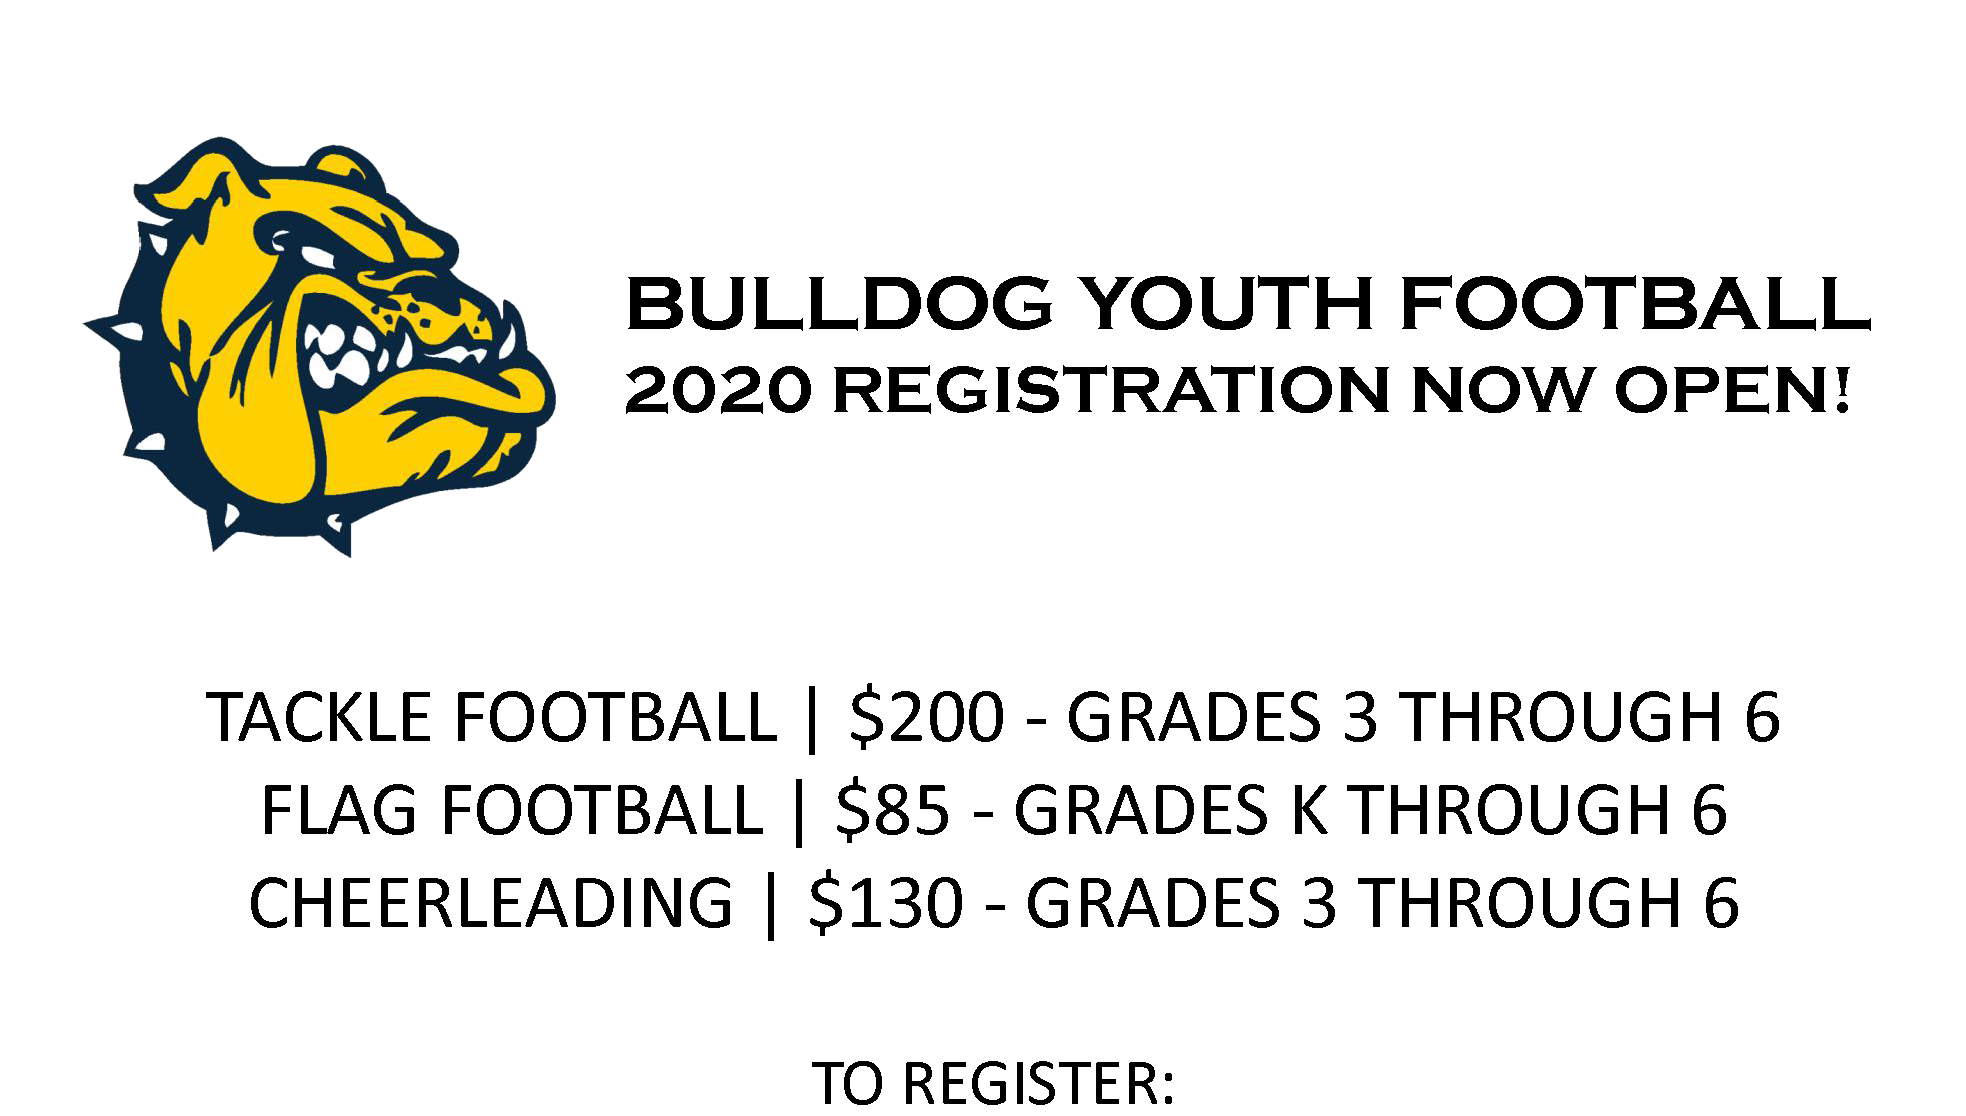 2020 youth football